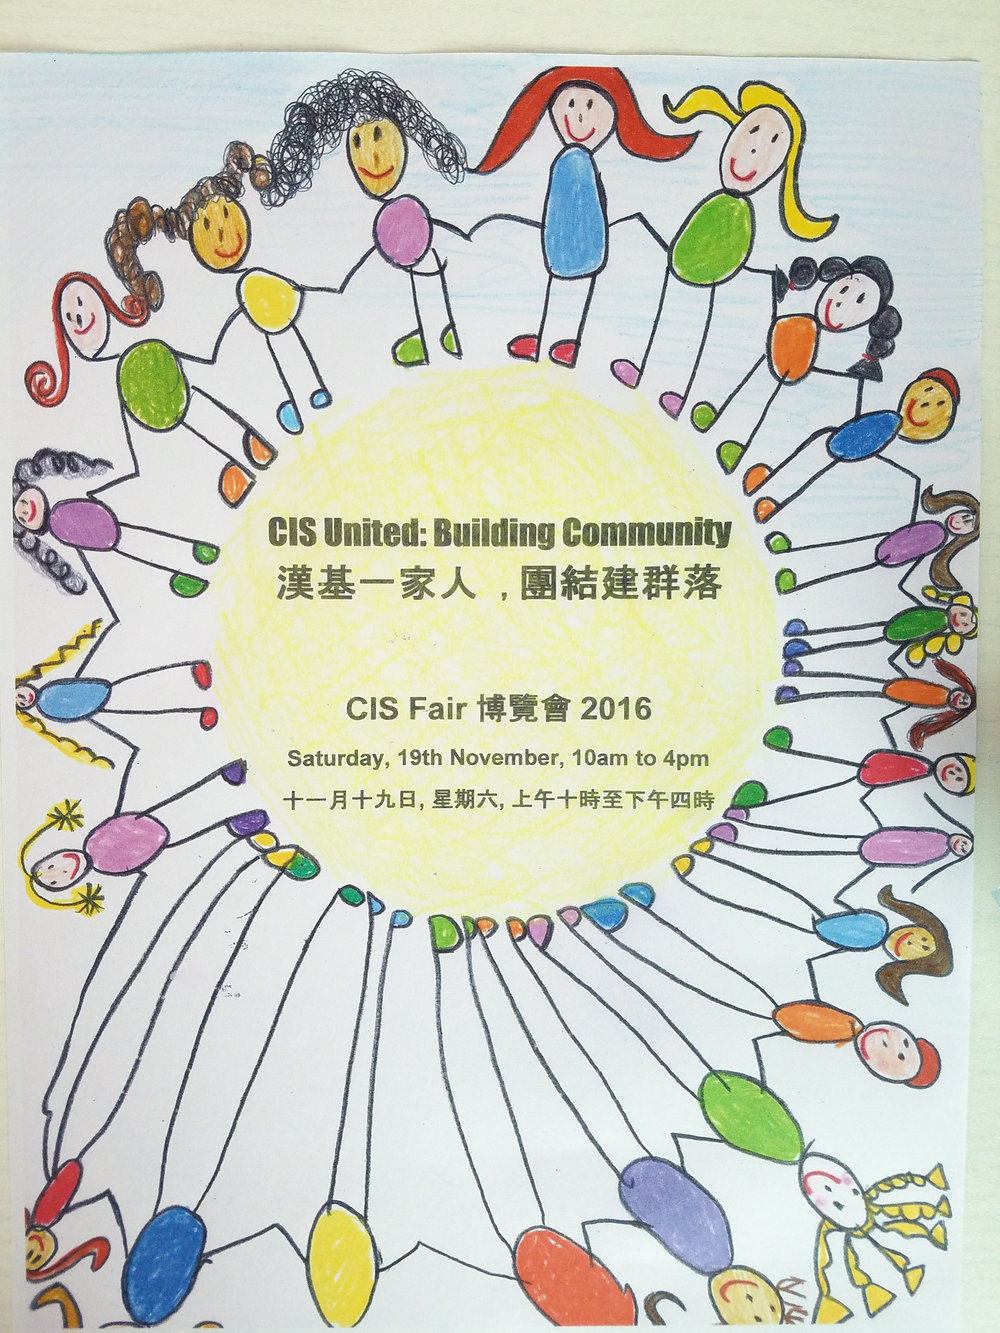 CIS Fair Poster Design Oct 2016-2.jpg